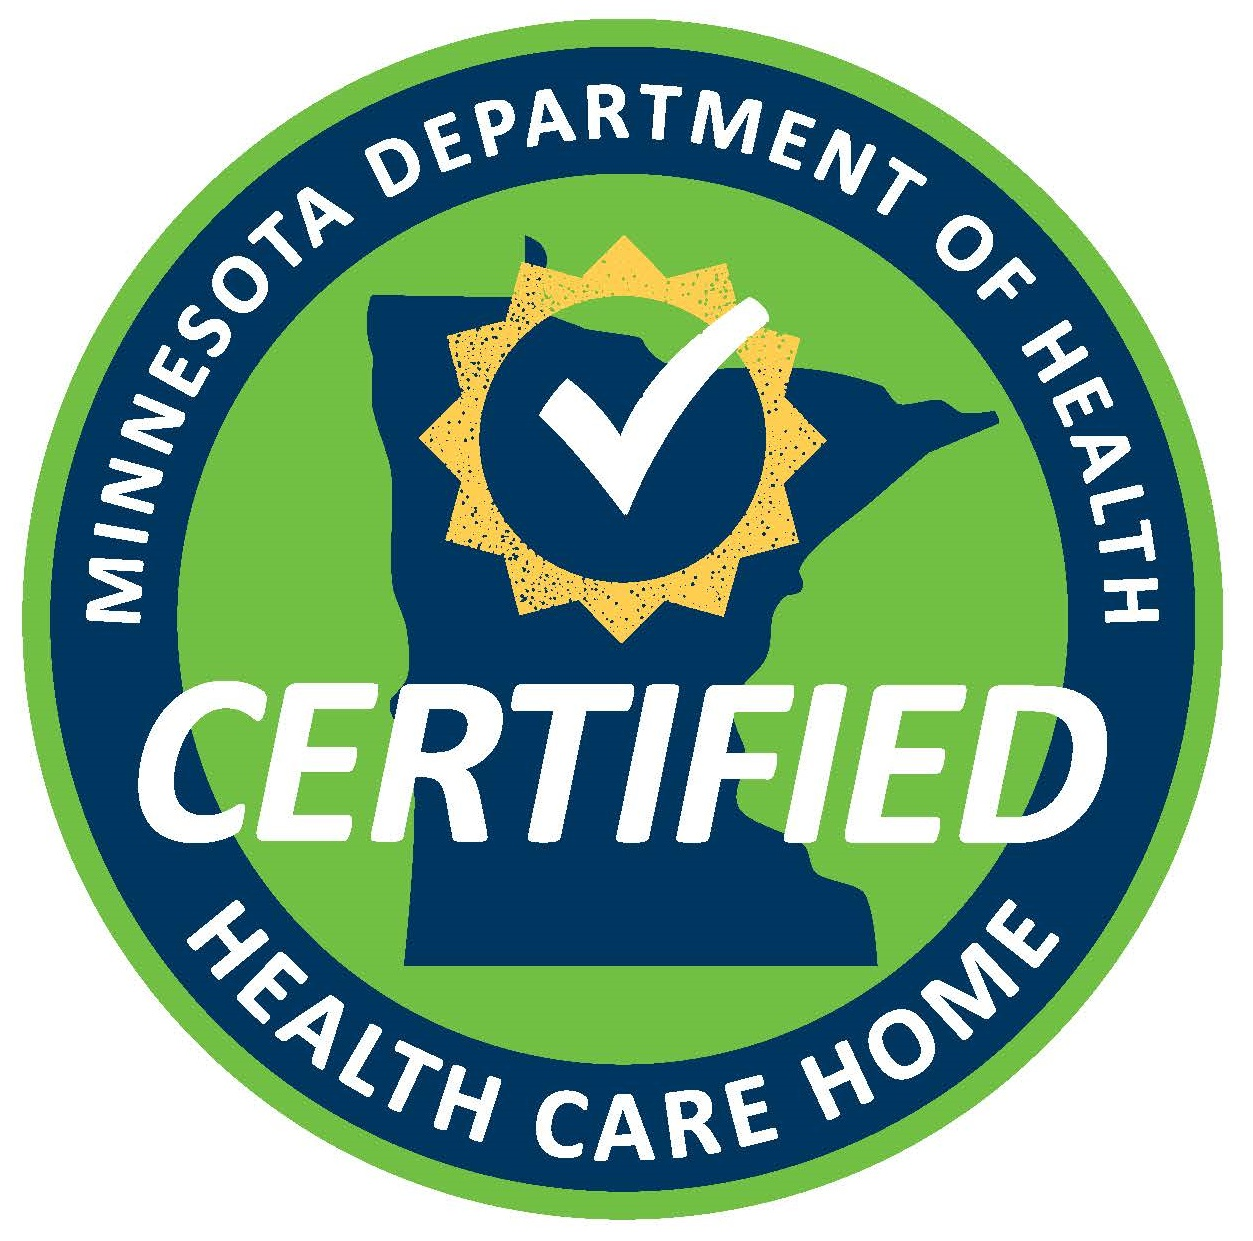 Health Care Homes seal